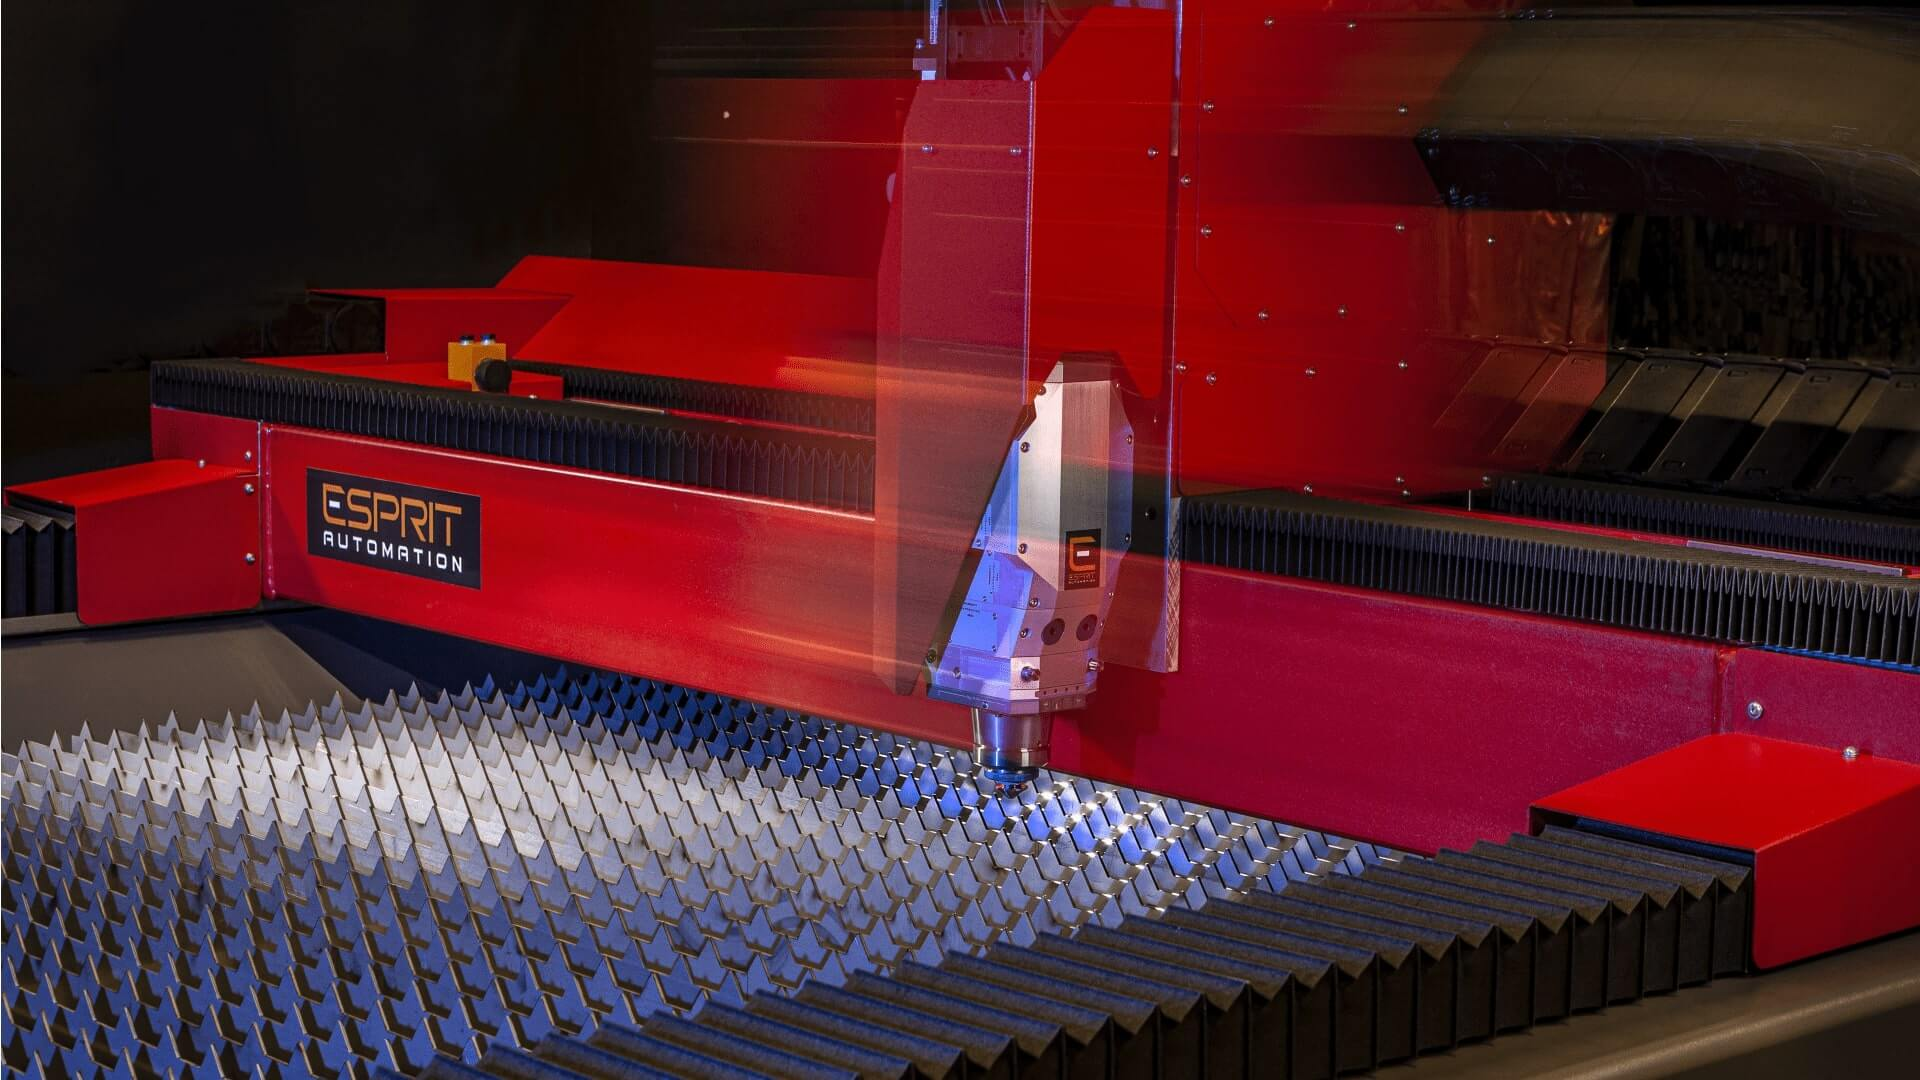 Esprit Automation Fiber Laser Cutting Head Moving at High Speed